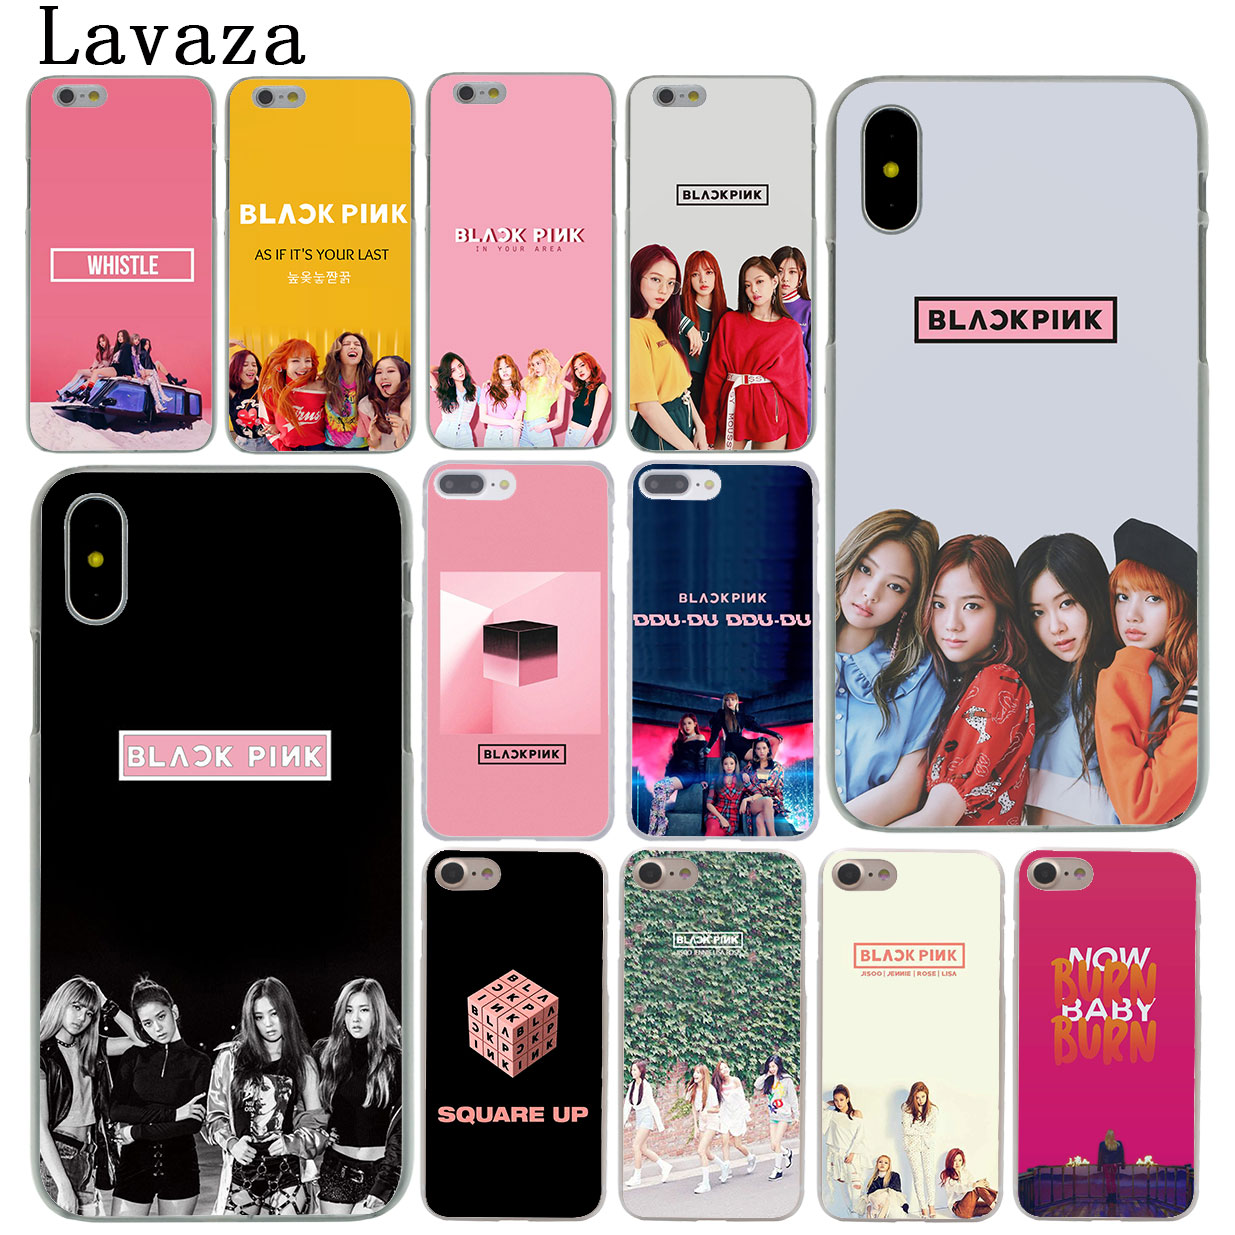 cbad5b2fe4 Lavaza Blackpink Black Pink Lisa Rose Hard Cover Case for Apple iPhone X XS  Max XR 6 6S 7 8 Plus 5 5S SE 5C 4S 10 Phone Cases